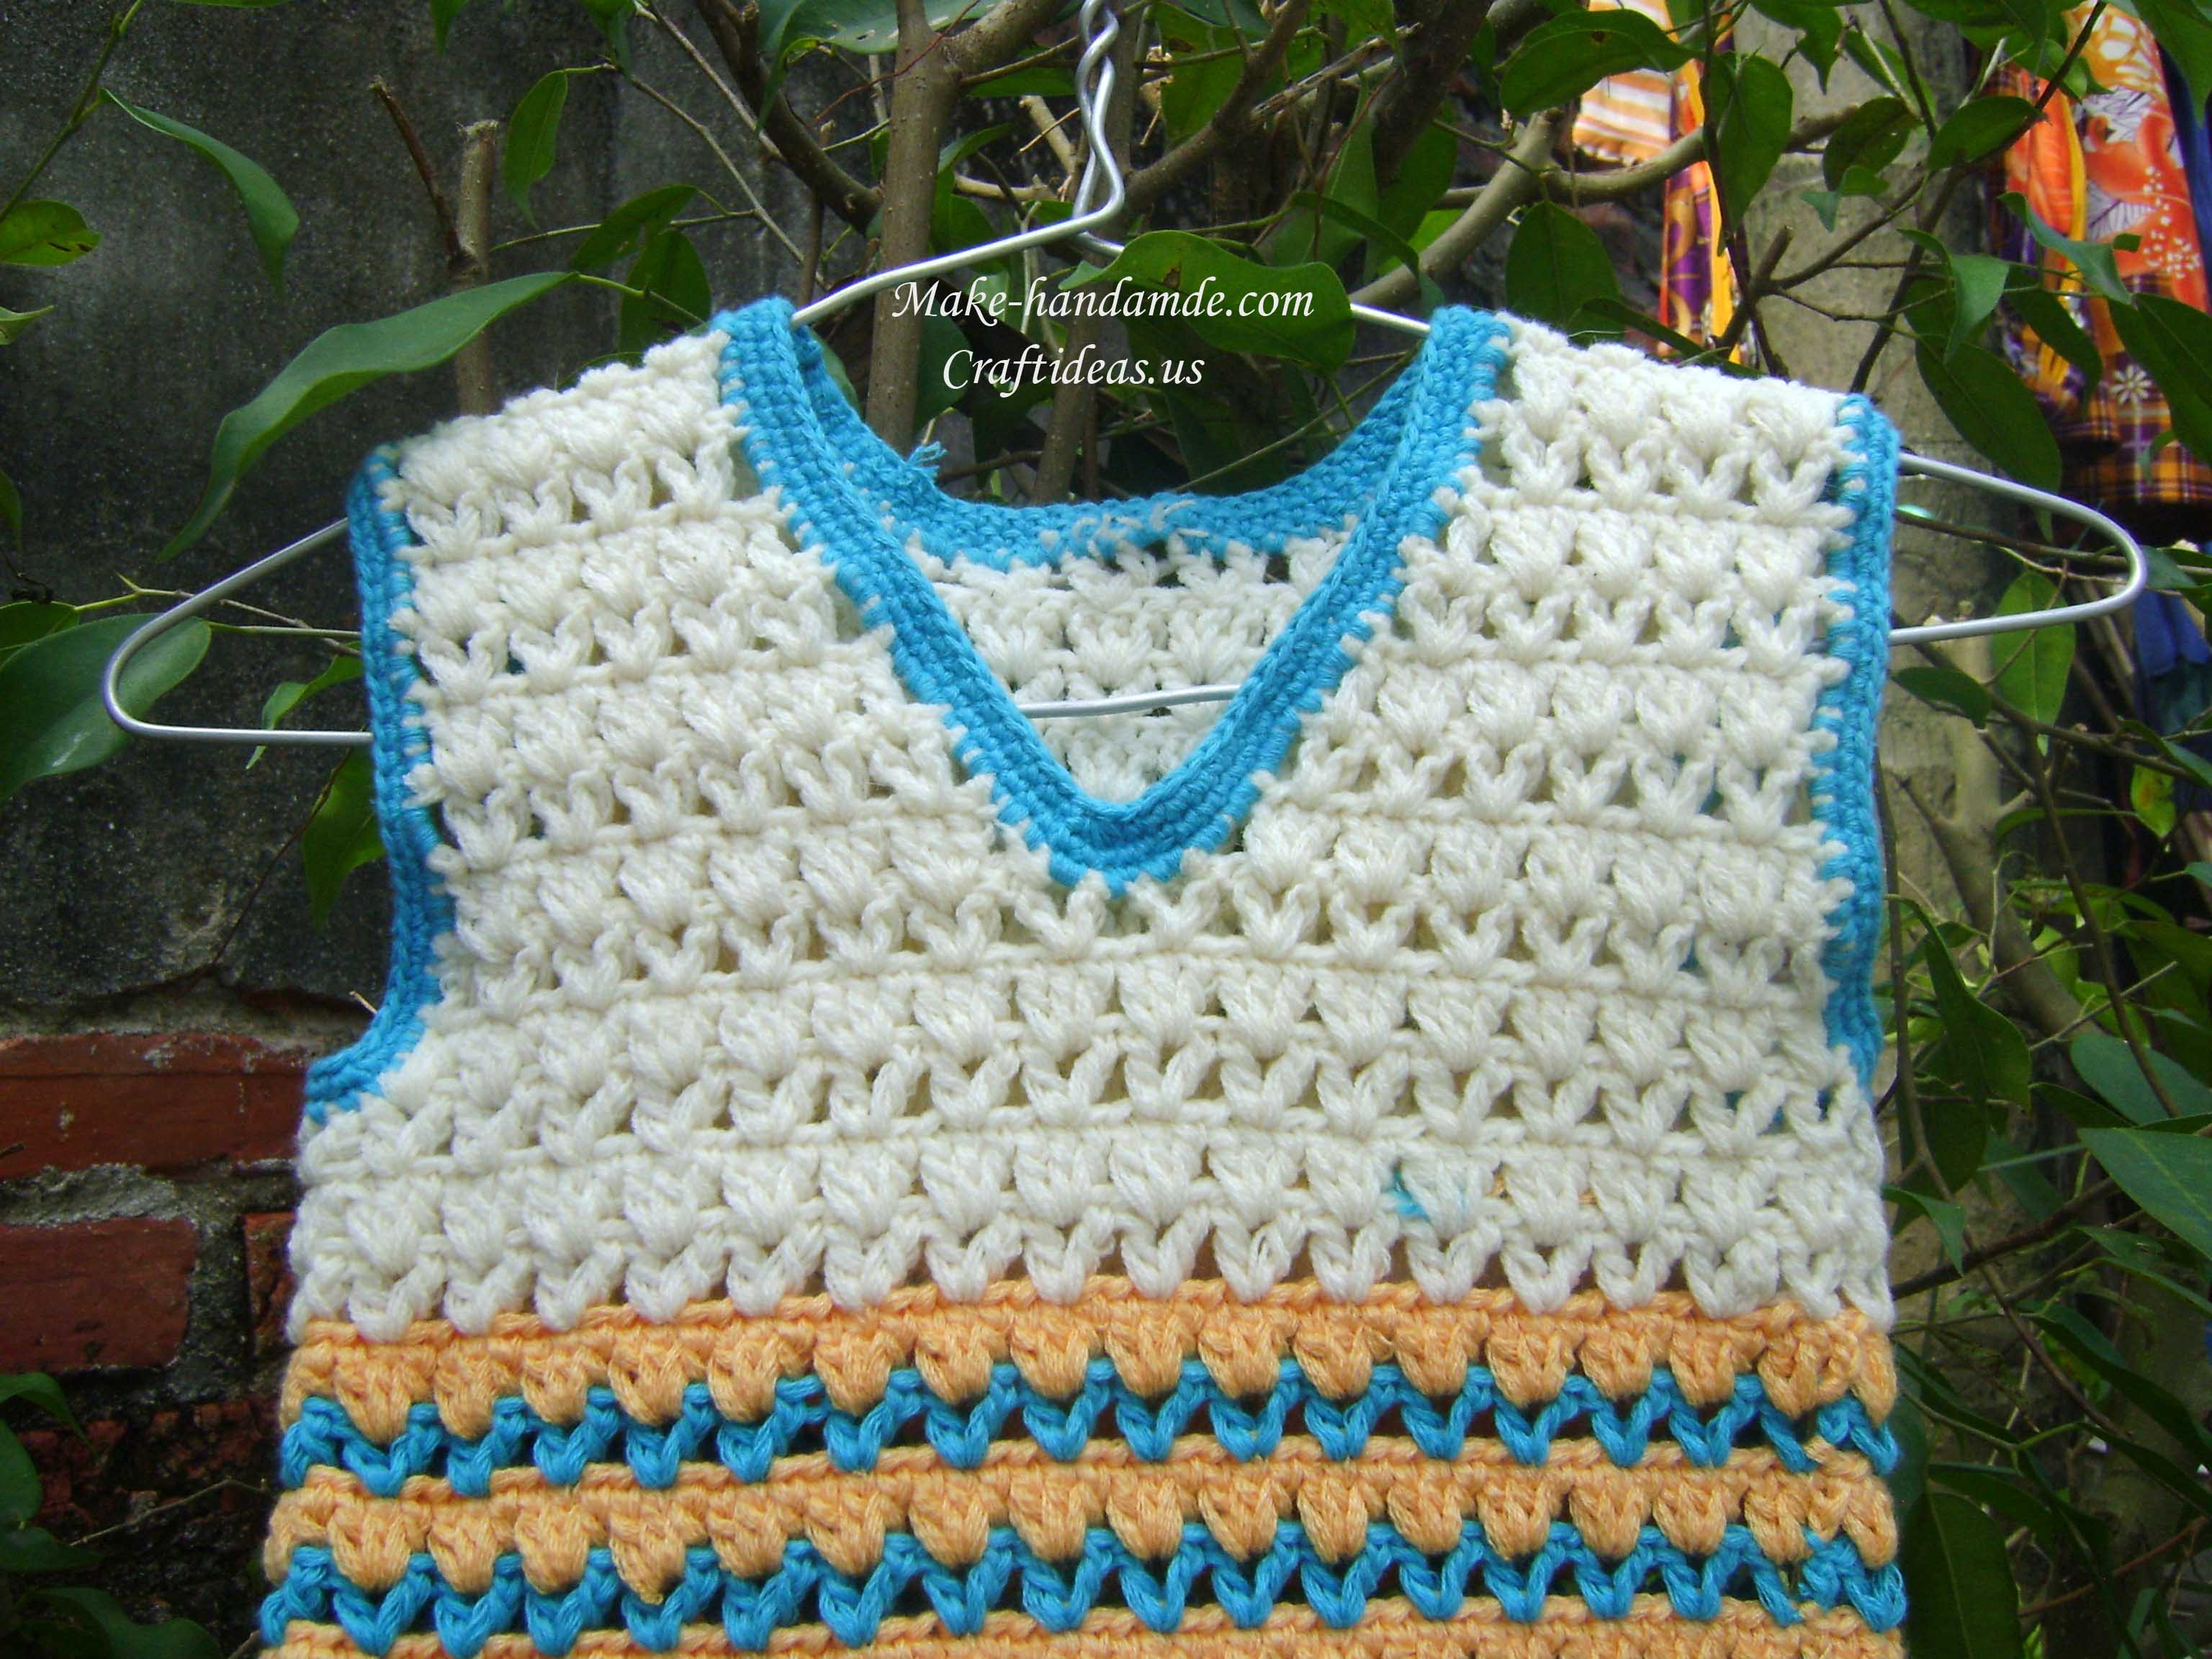 Crochet for Kids Awesome Crochet Easy and Beauty Vest for Baby Craft Ideas Of Lovely 43 Photos Crochet for Kids